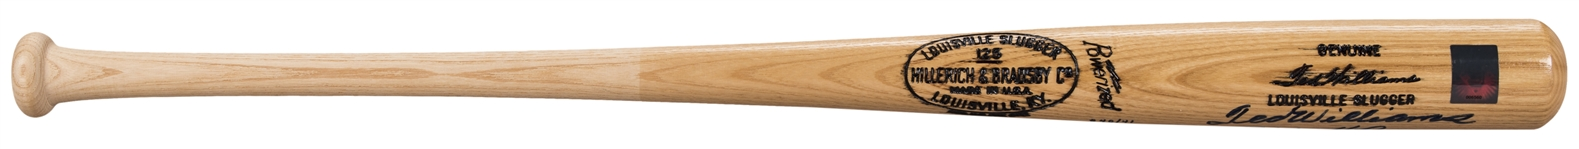 Ted Williams Signed Hillerich & Bradsby W215 Bat With Inscribed Stats (JSA)